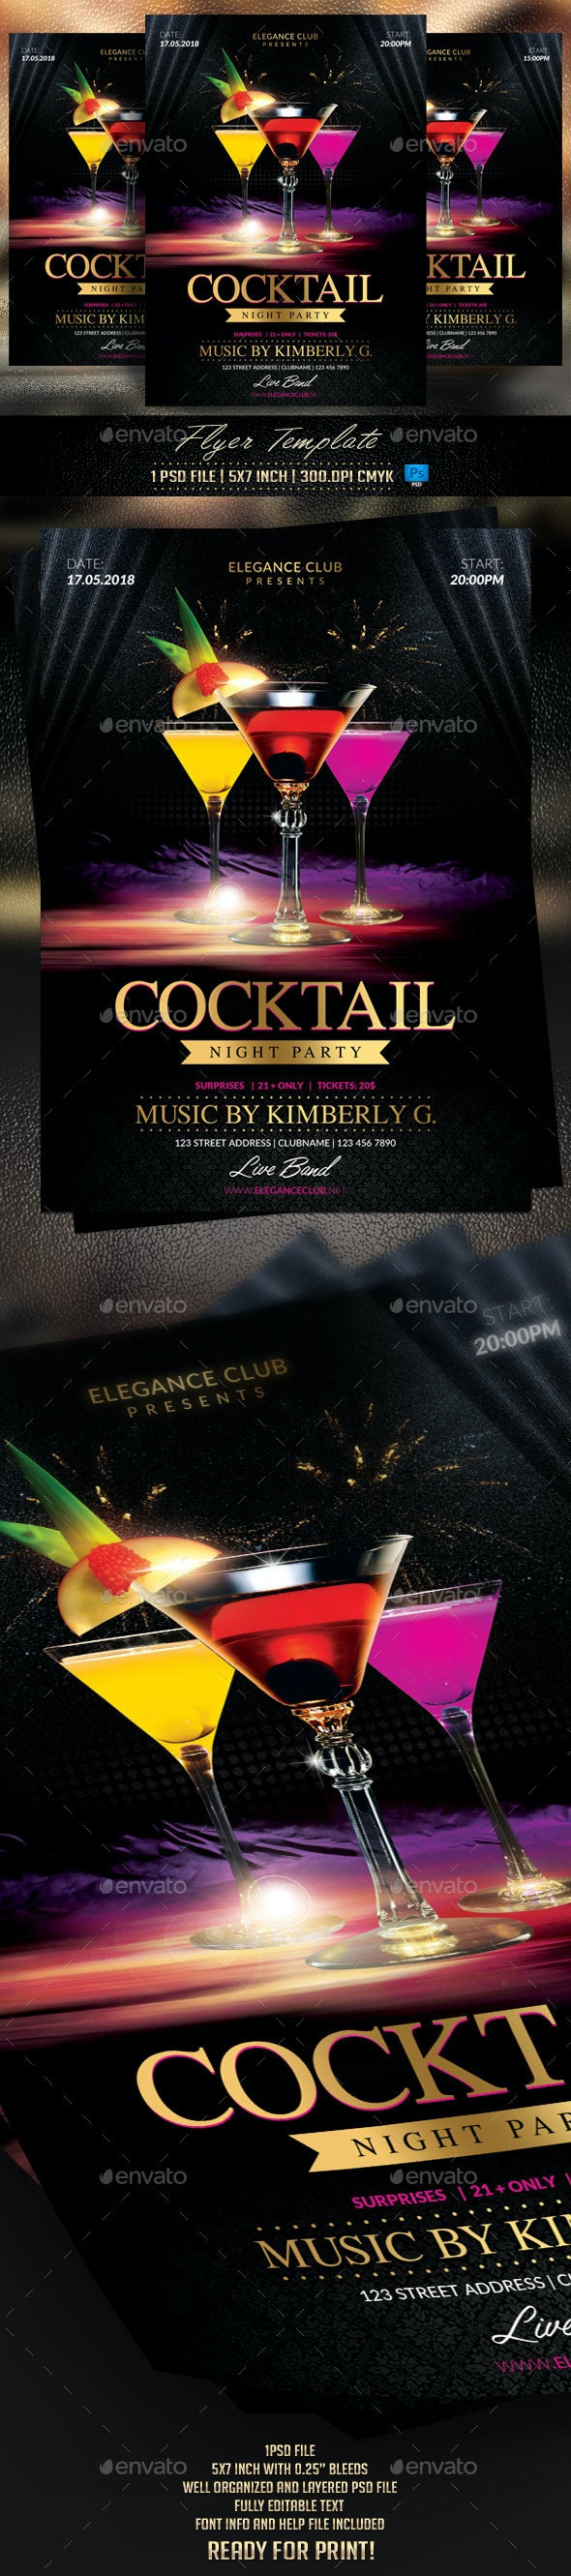 Cocktail Night Party Flyer Template - Flyers Print Templates